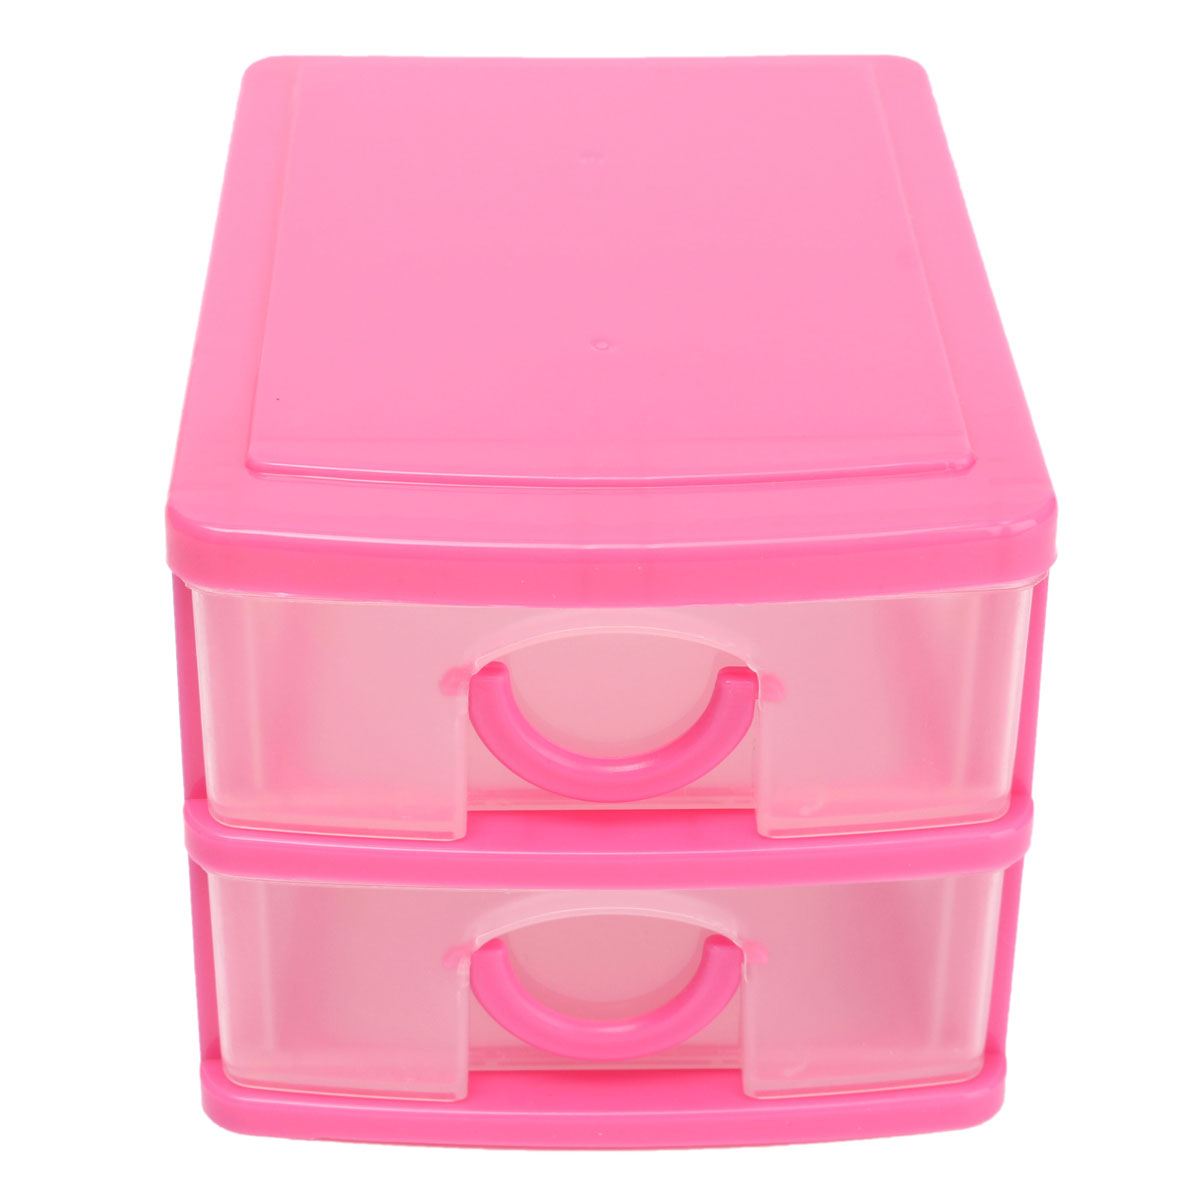 Desktop-Storage-Box-with-Two-or-Three-Drawers-Jewelry-Organizer-Holder-Cabinets